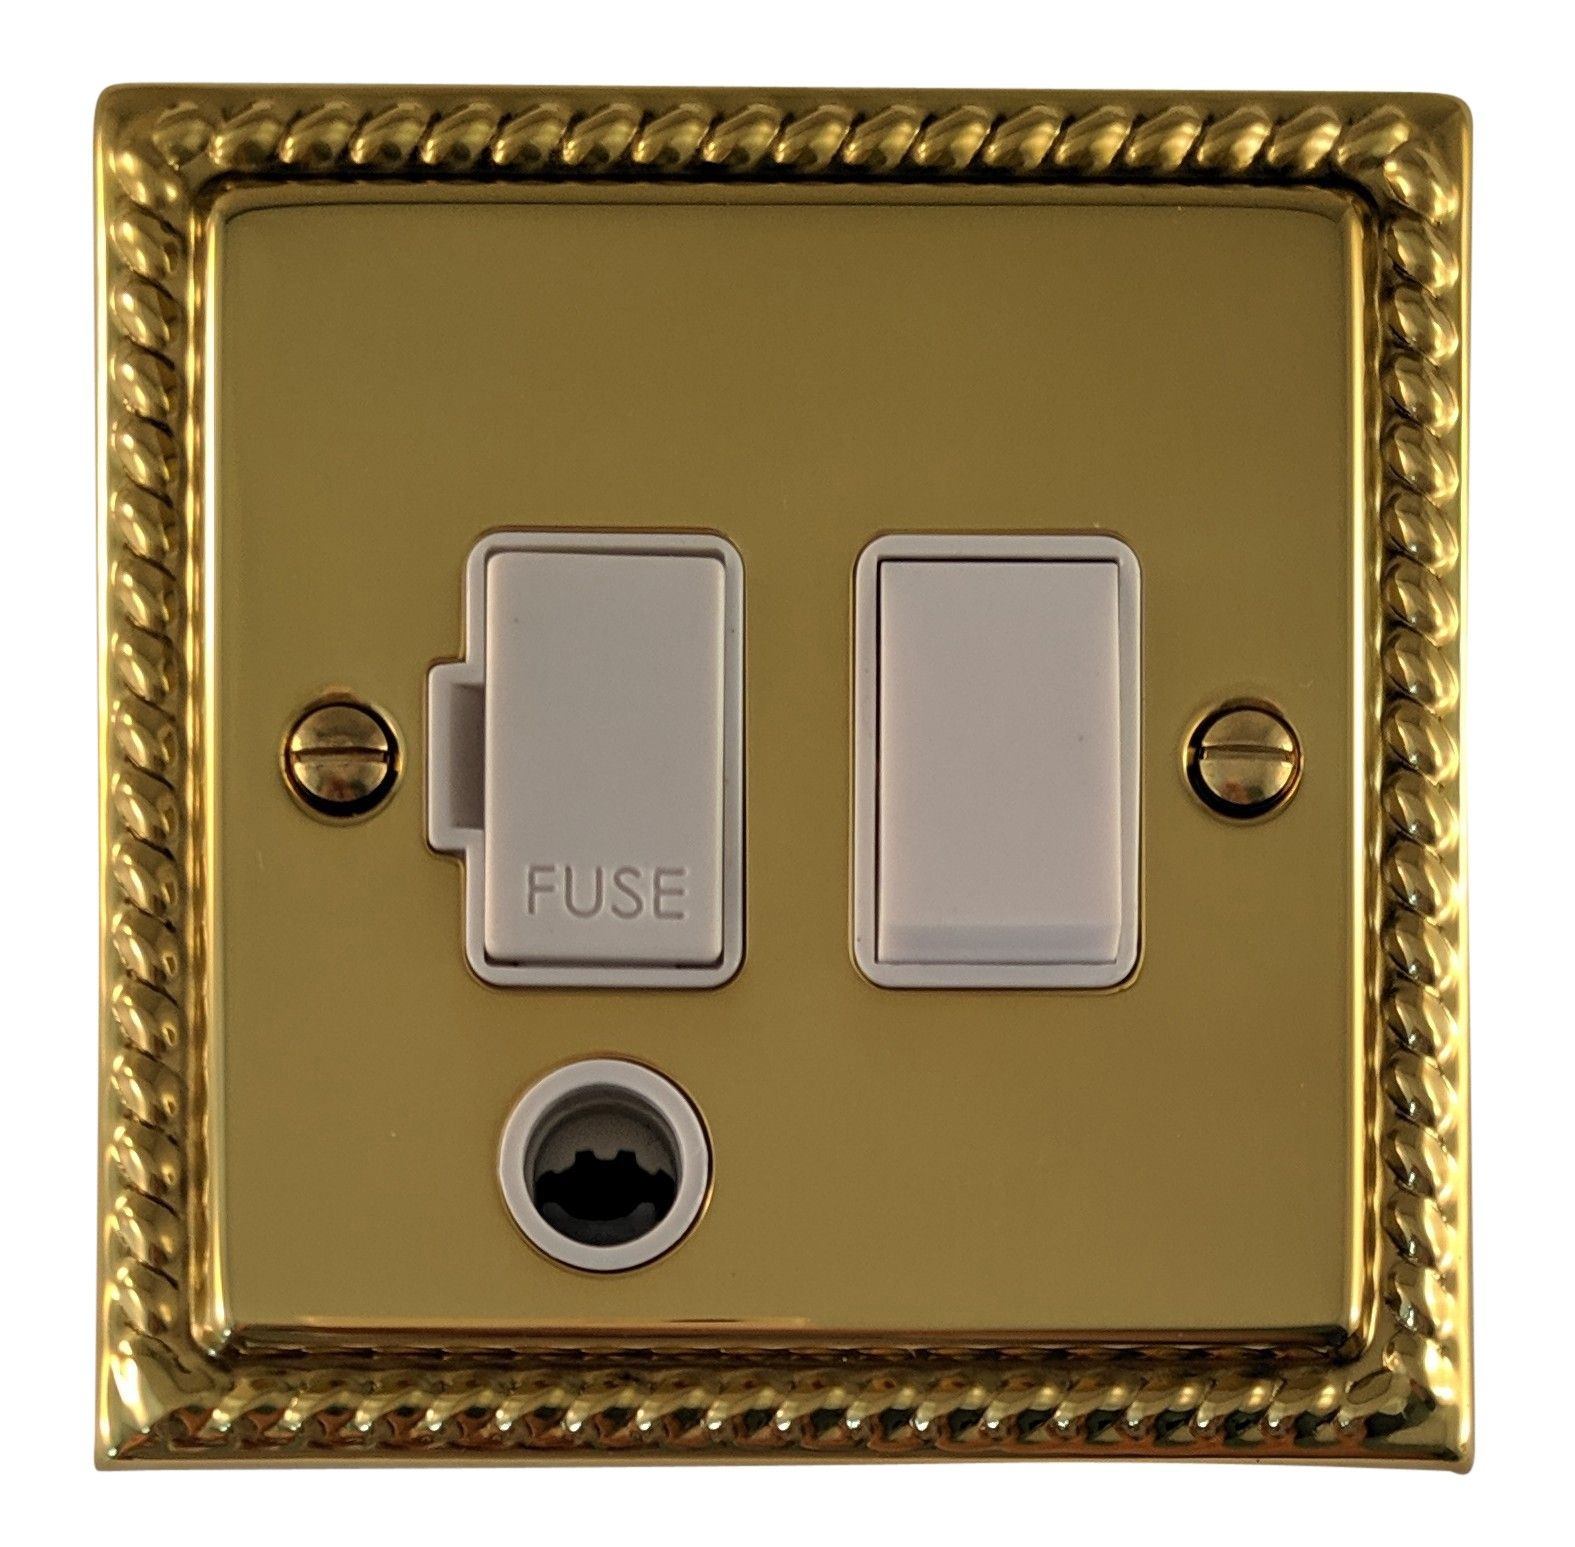 G&H MB56W Monarch Roped Polished Brass 1 Gang Fused Spur 13A Switched & Flex Outlet